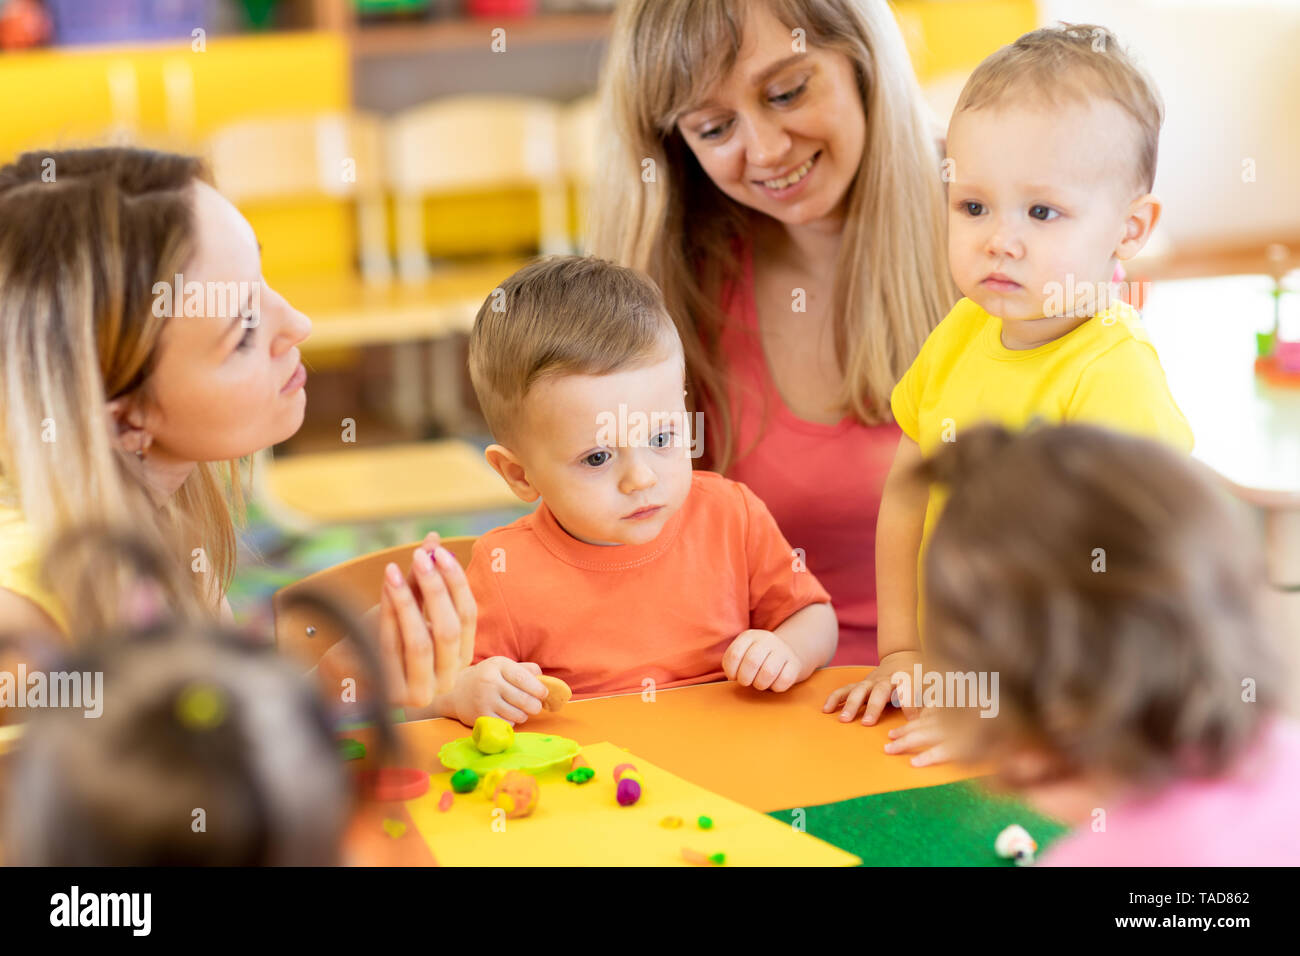 Babies with teacher play colorful clay toy in nursery - Stock Image